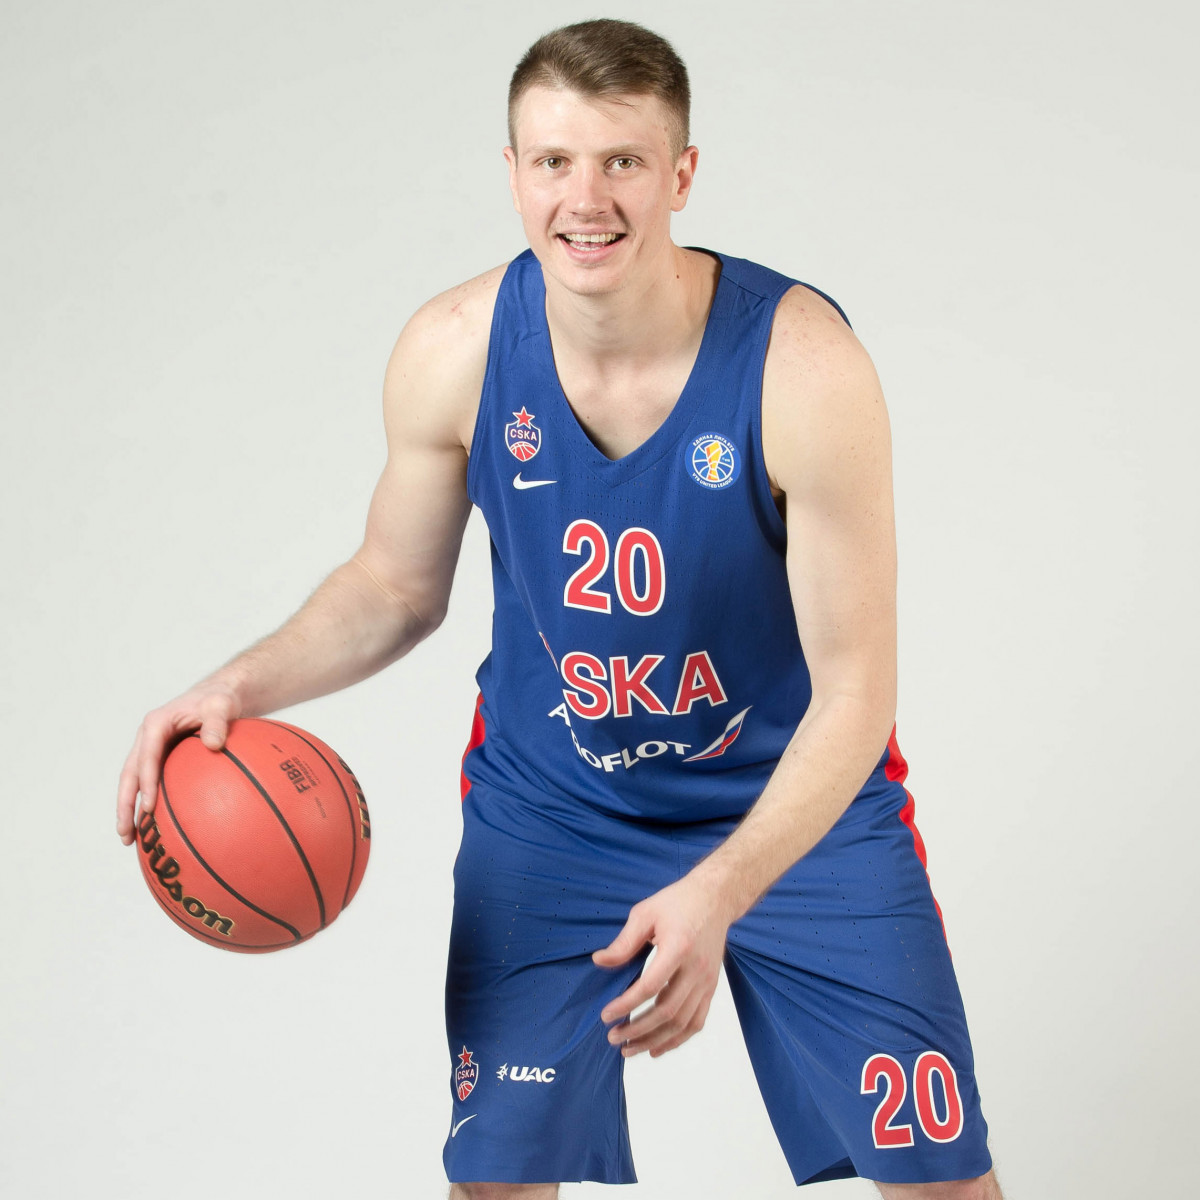 Photo of Andrei Vorontsevich, 2017-2018 season